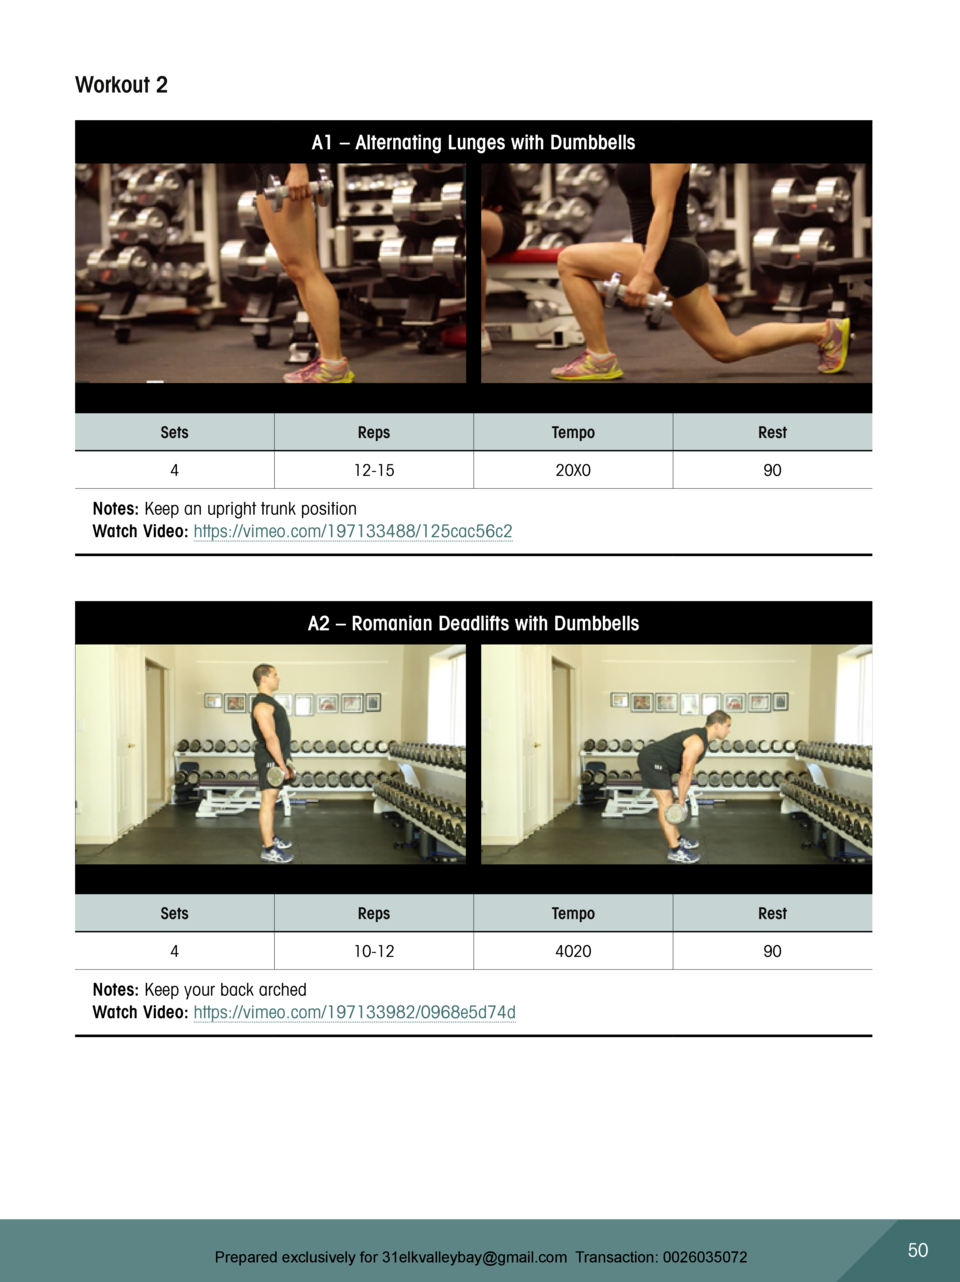 Workout 2 A1     Alternating Lunges with Dumbbells  Sets  Reps  Tempo  Rest  4  12-15  20X0  90  Notes  Keep an upright tr...